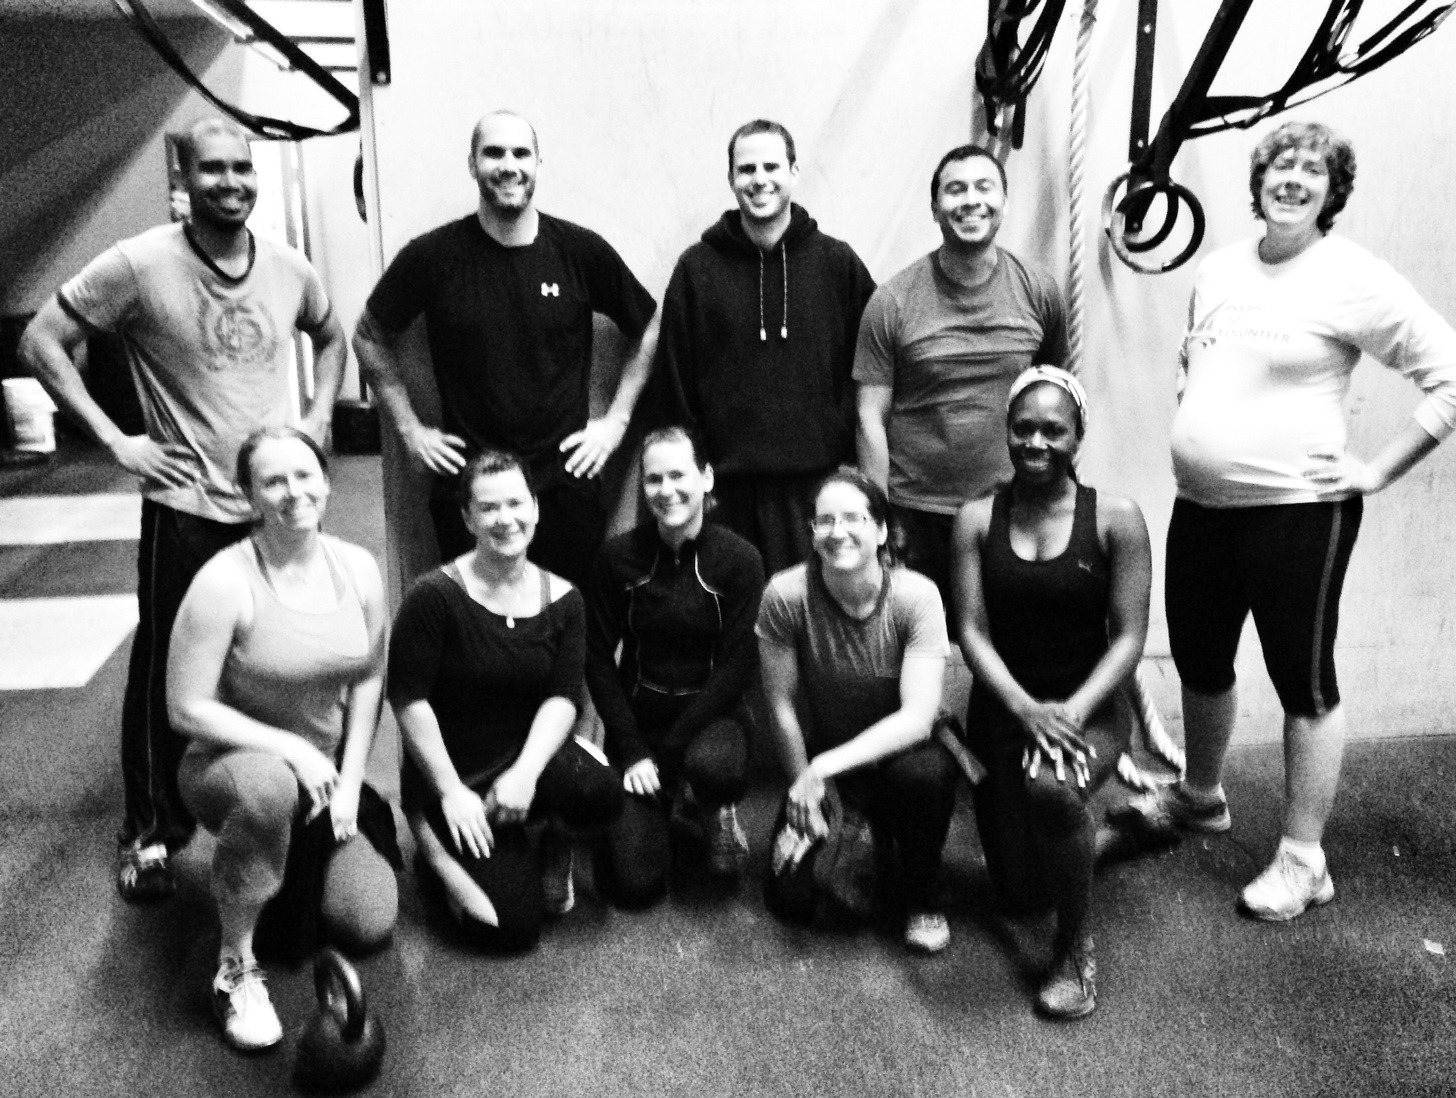 October 21, 2013. 6 a.m. First class at CrossFit V16